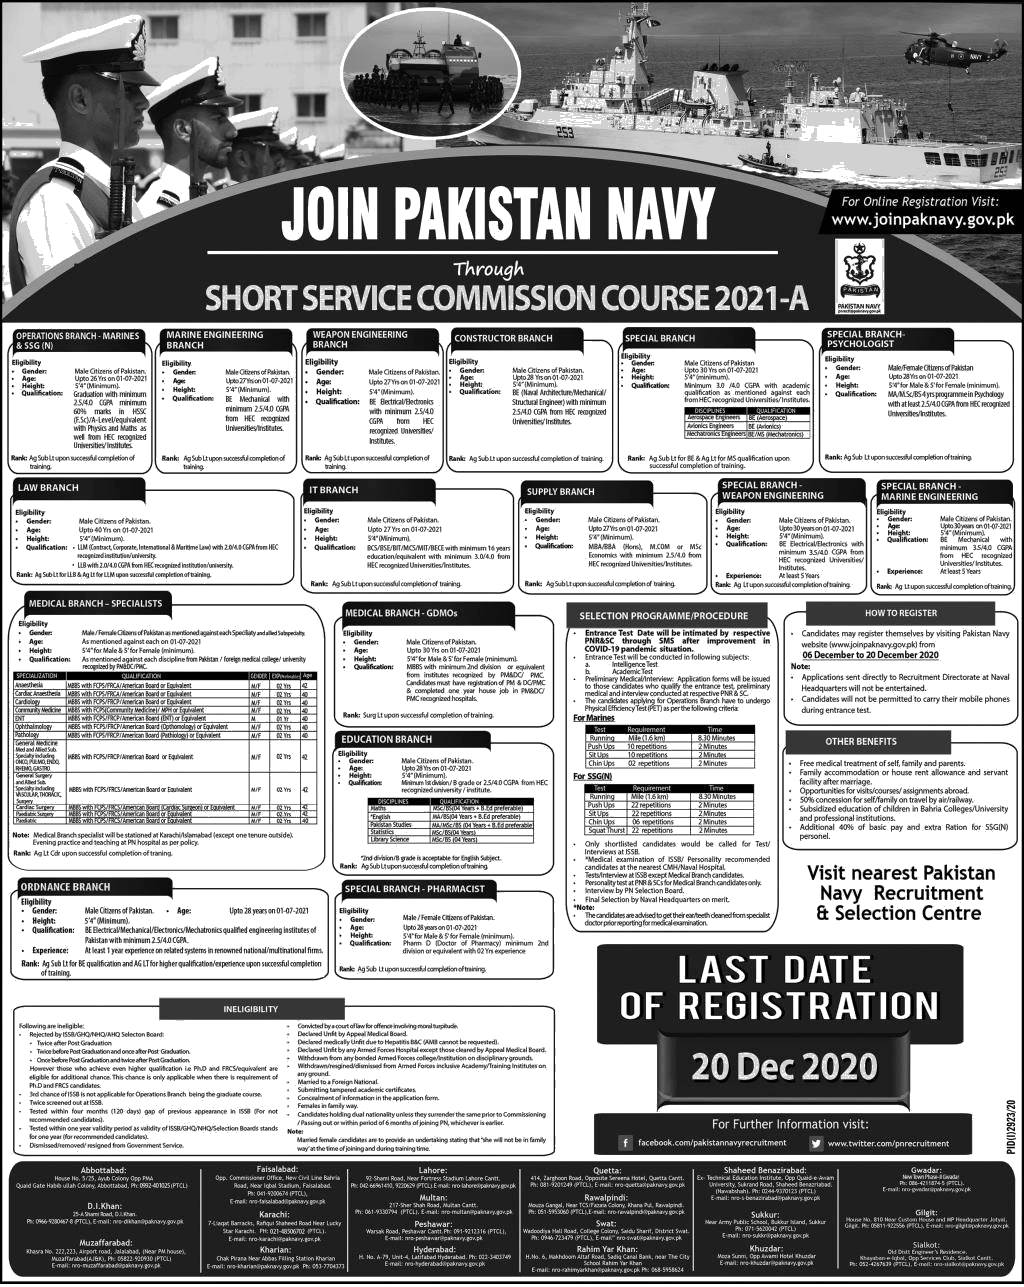 Join Pakistan Navy through Short Service Commission Course 2021-A Online Registration Eligiblity Criteria